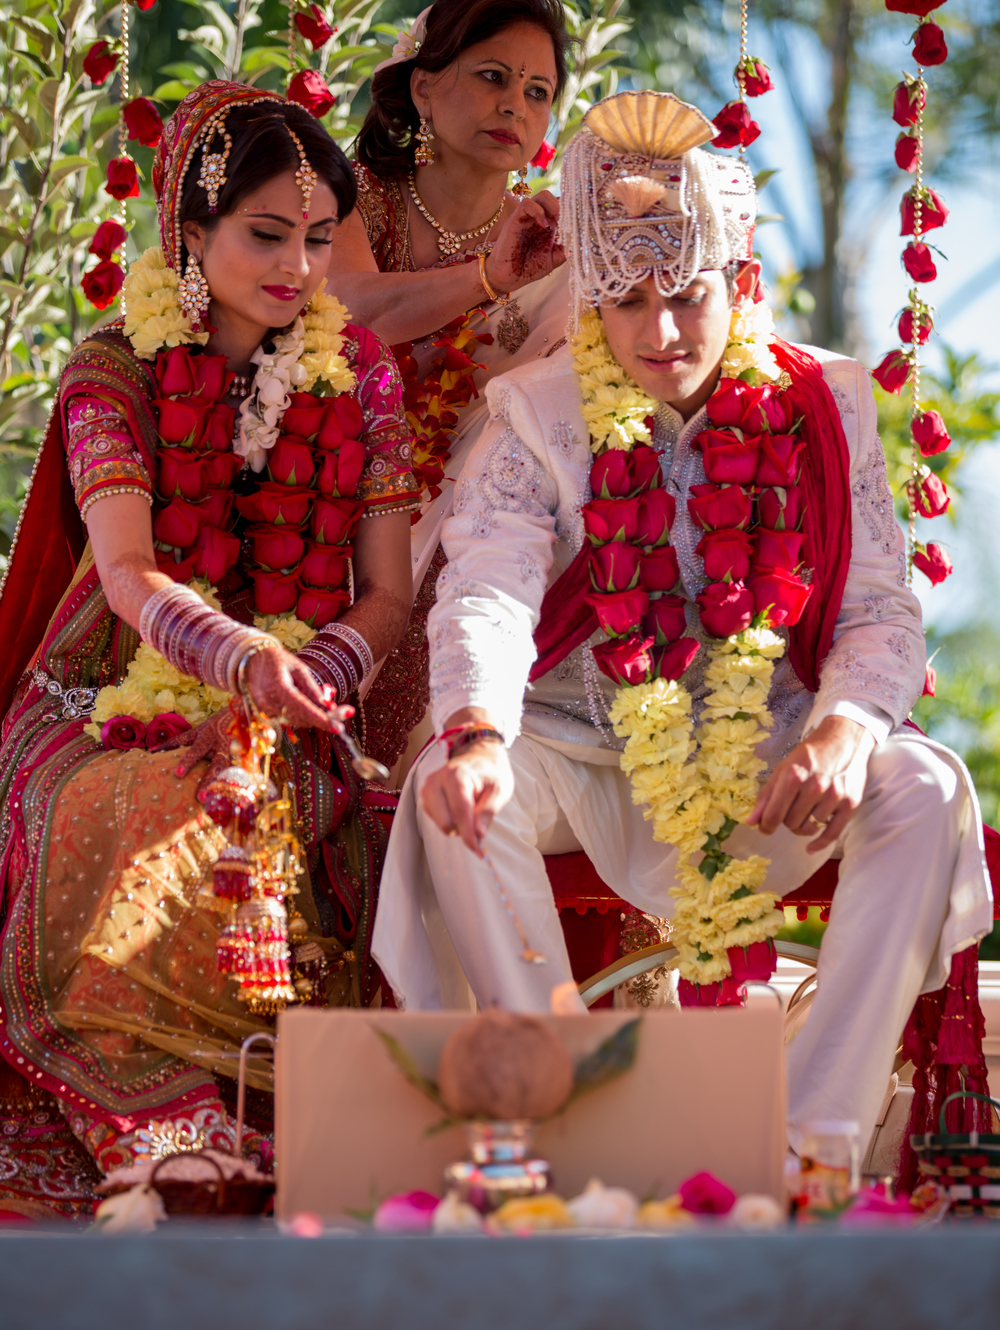 AnaisEvents_WeddingDocumentaryPhoto-Simi-Aneil - 055.jpg